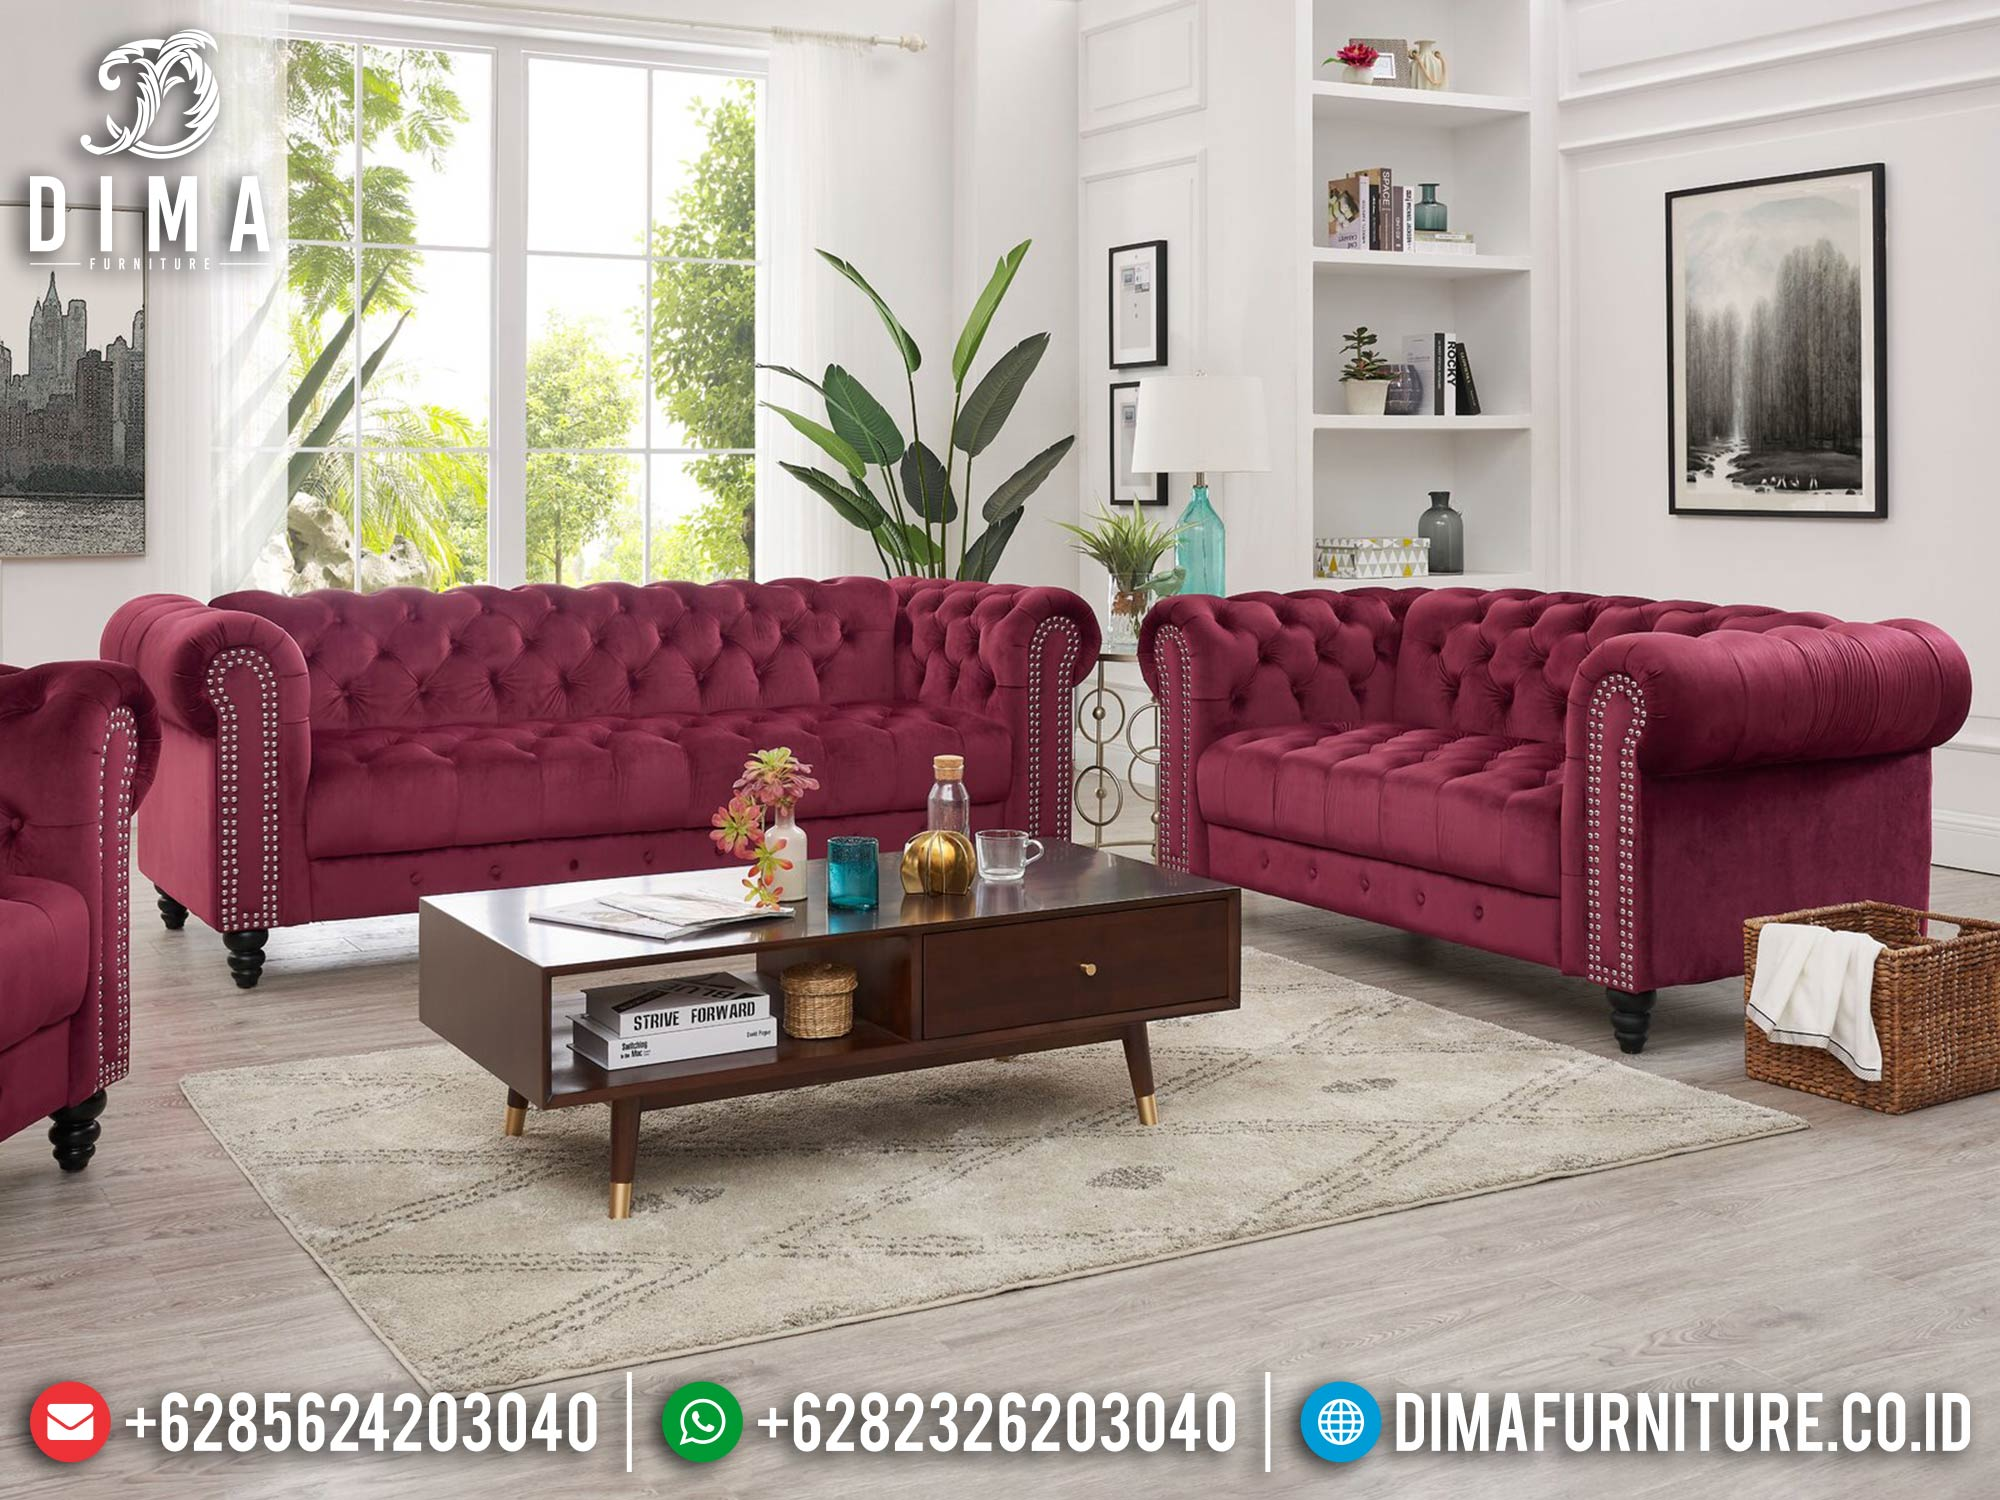 New Sofa Tamu Minimalis, Set Sofa Tamu Jepara, Furnitur Sofa Minimalis Luxury ST-1319